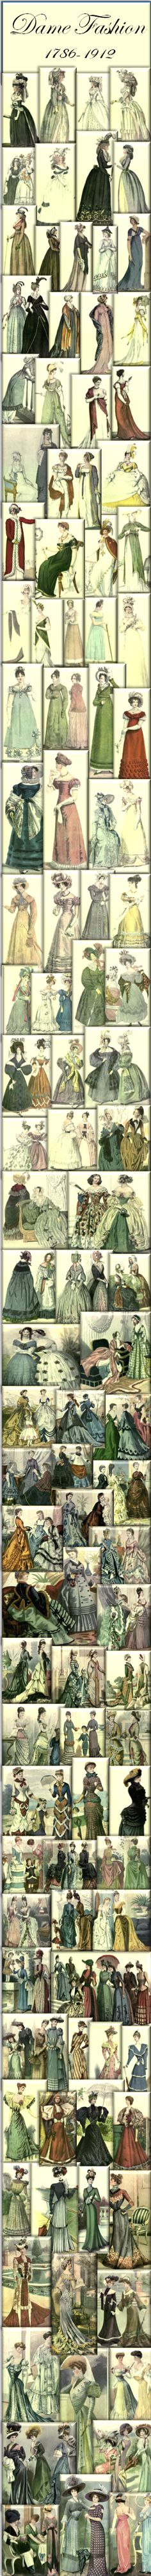 Read Dame Fashion by Julius M. Price, written in 1913. It is a beautiful account of female fashion from 1786 to 1912. Read it on DIY Collaboratorium's vintage reference page.